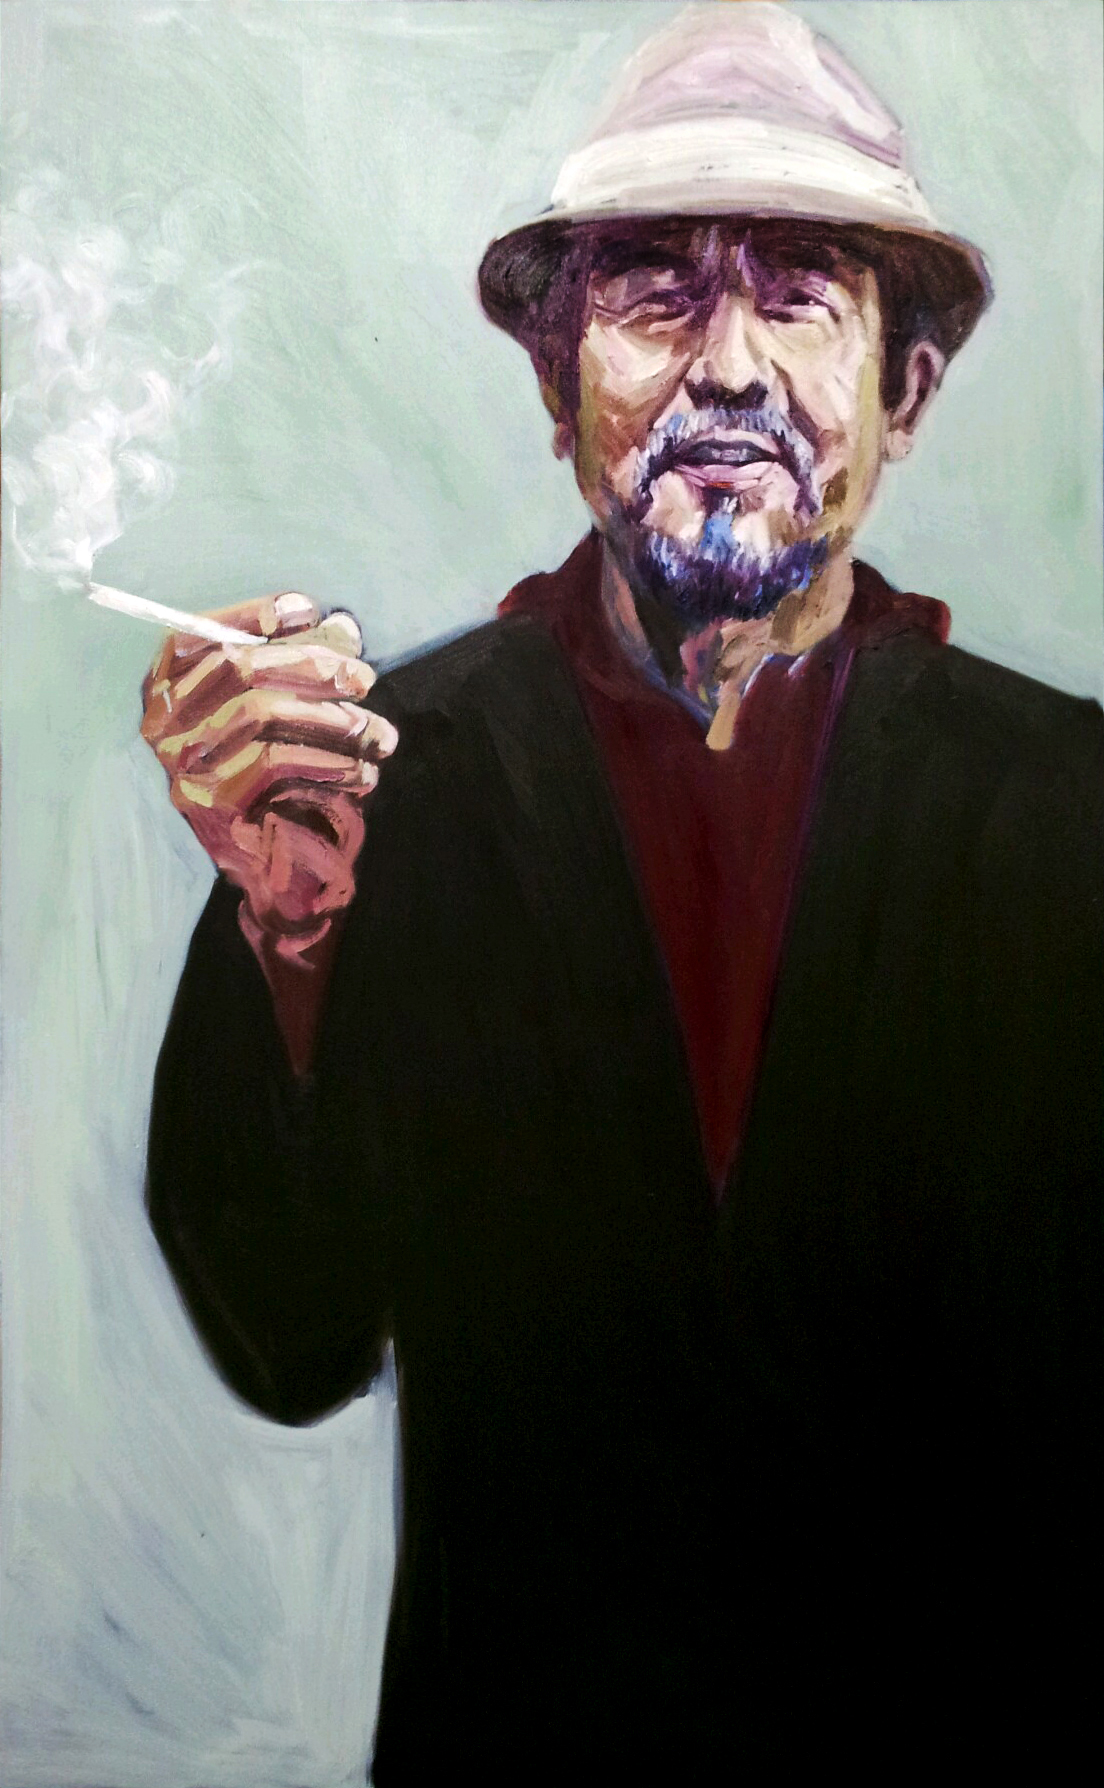 """The man with the cigarette"""